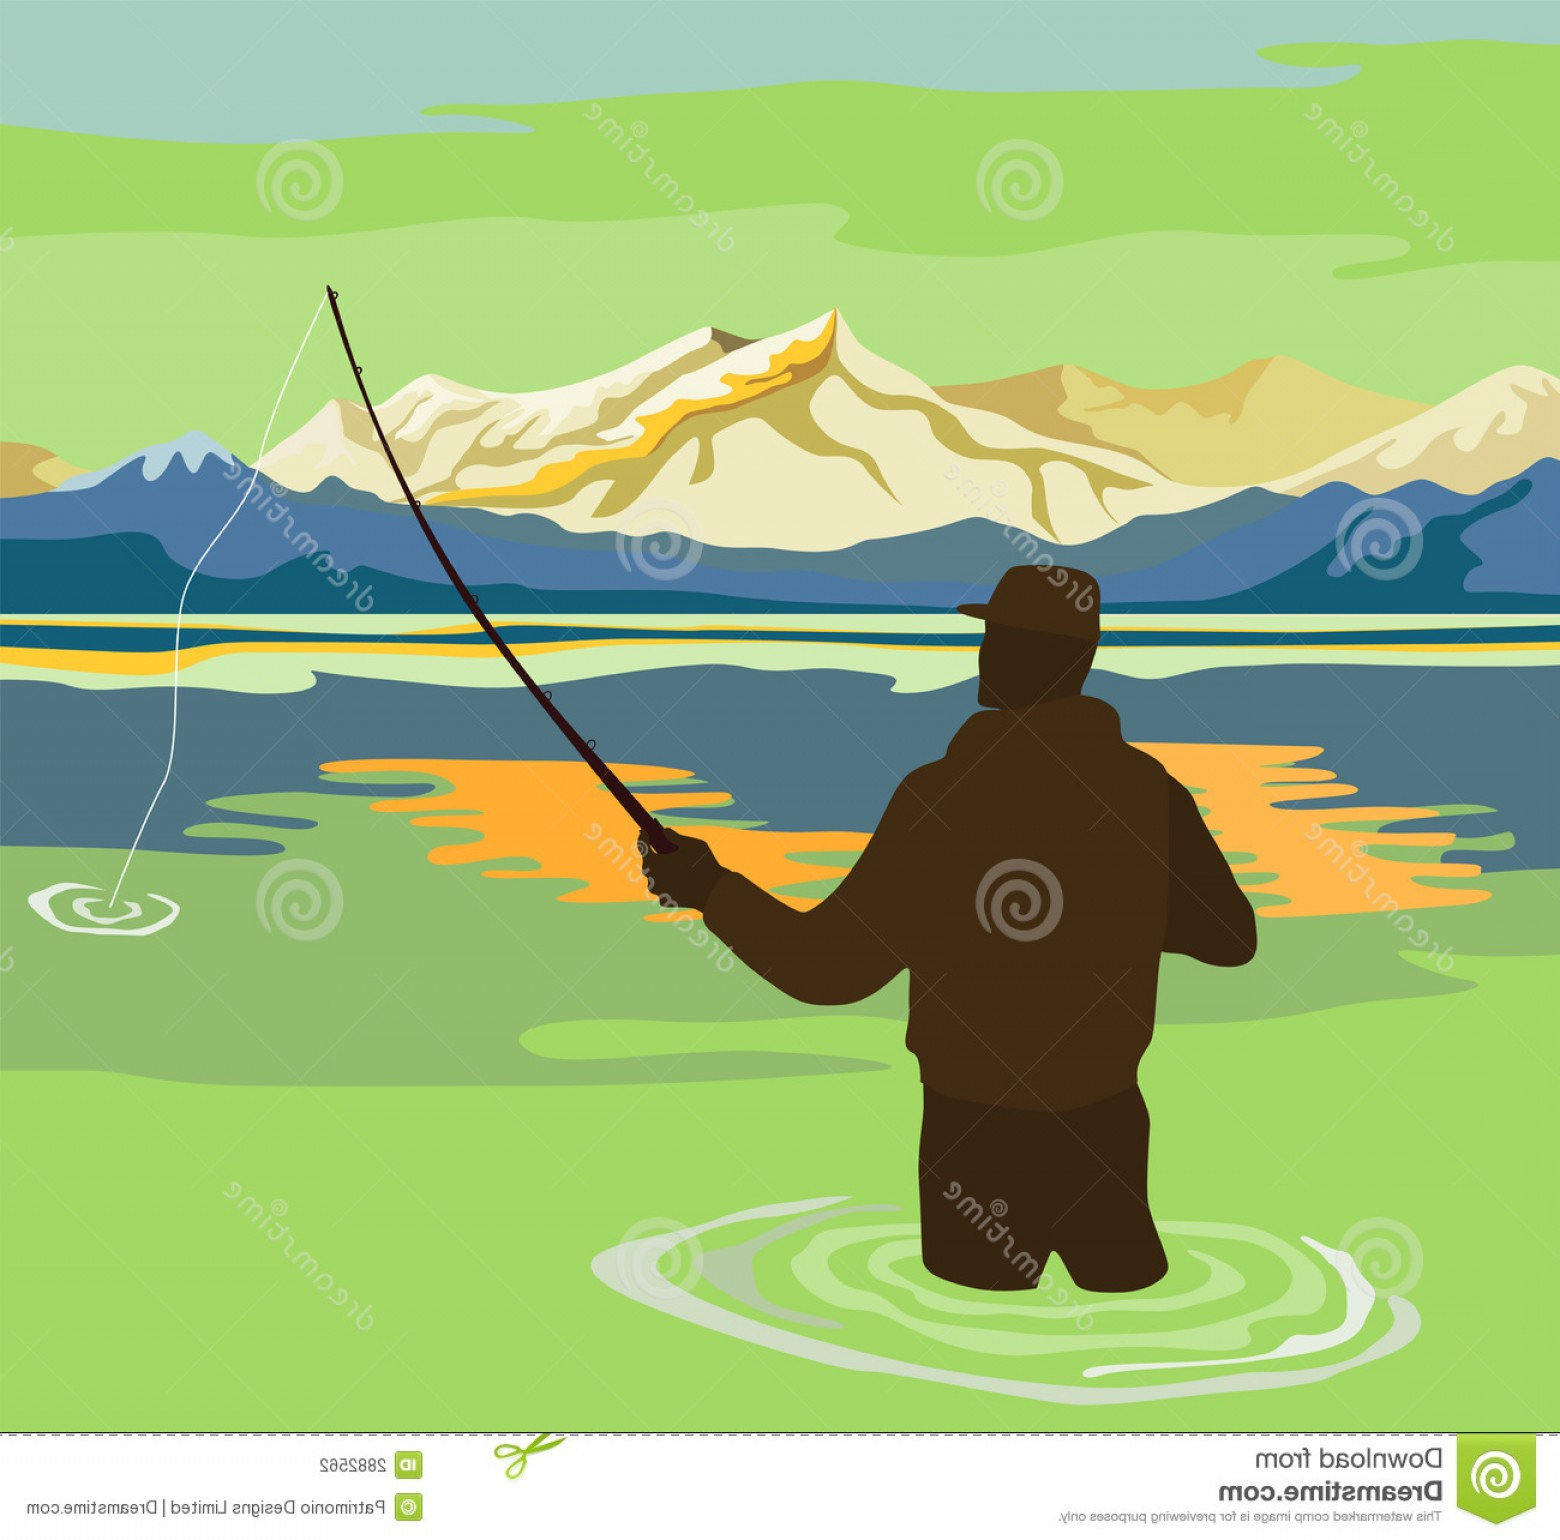 Detailed Vector Art Fly Fisherman: Stock Photography Fly Fishing Summer Image